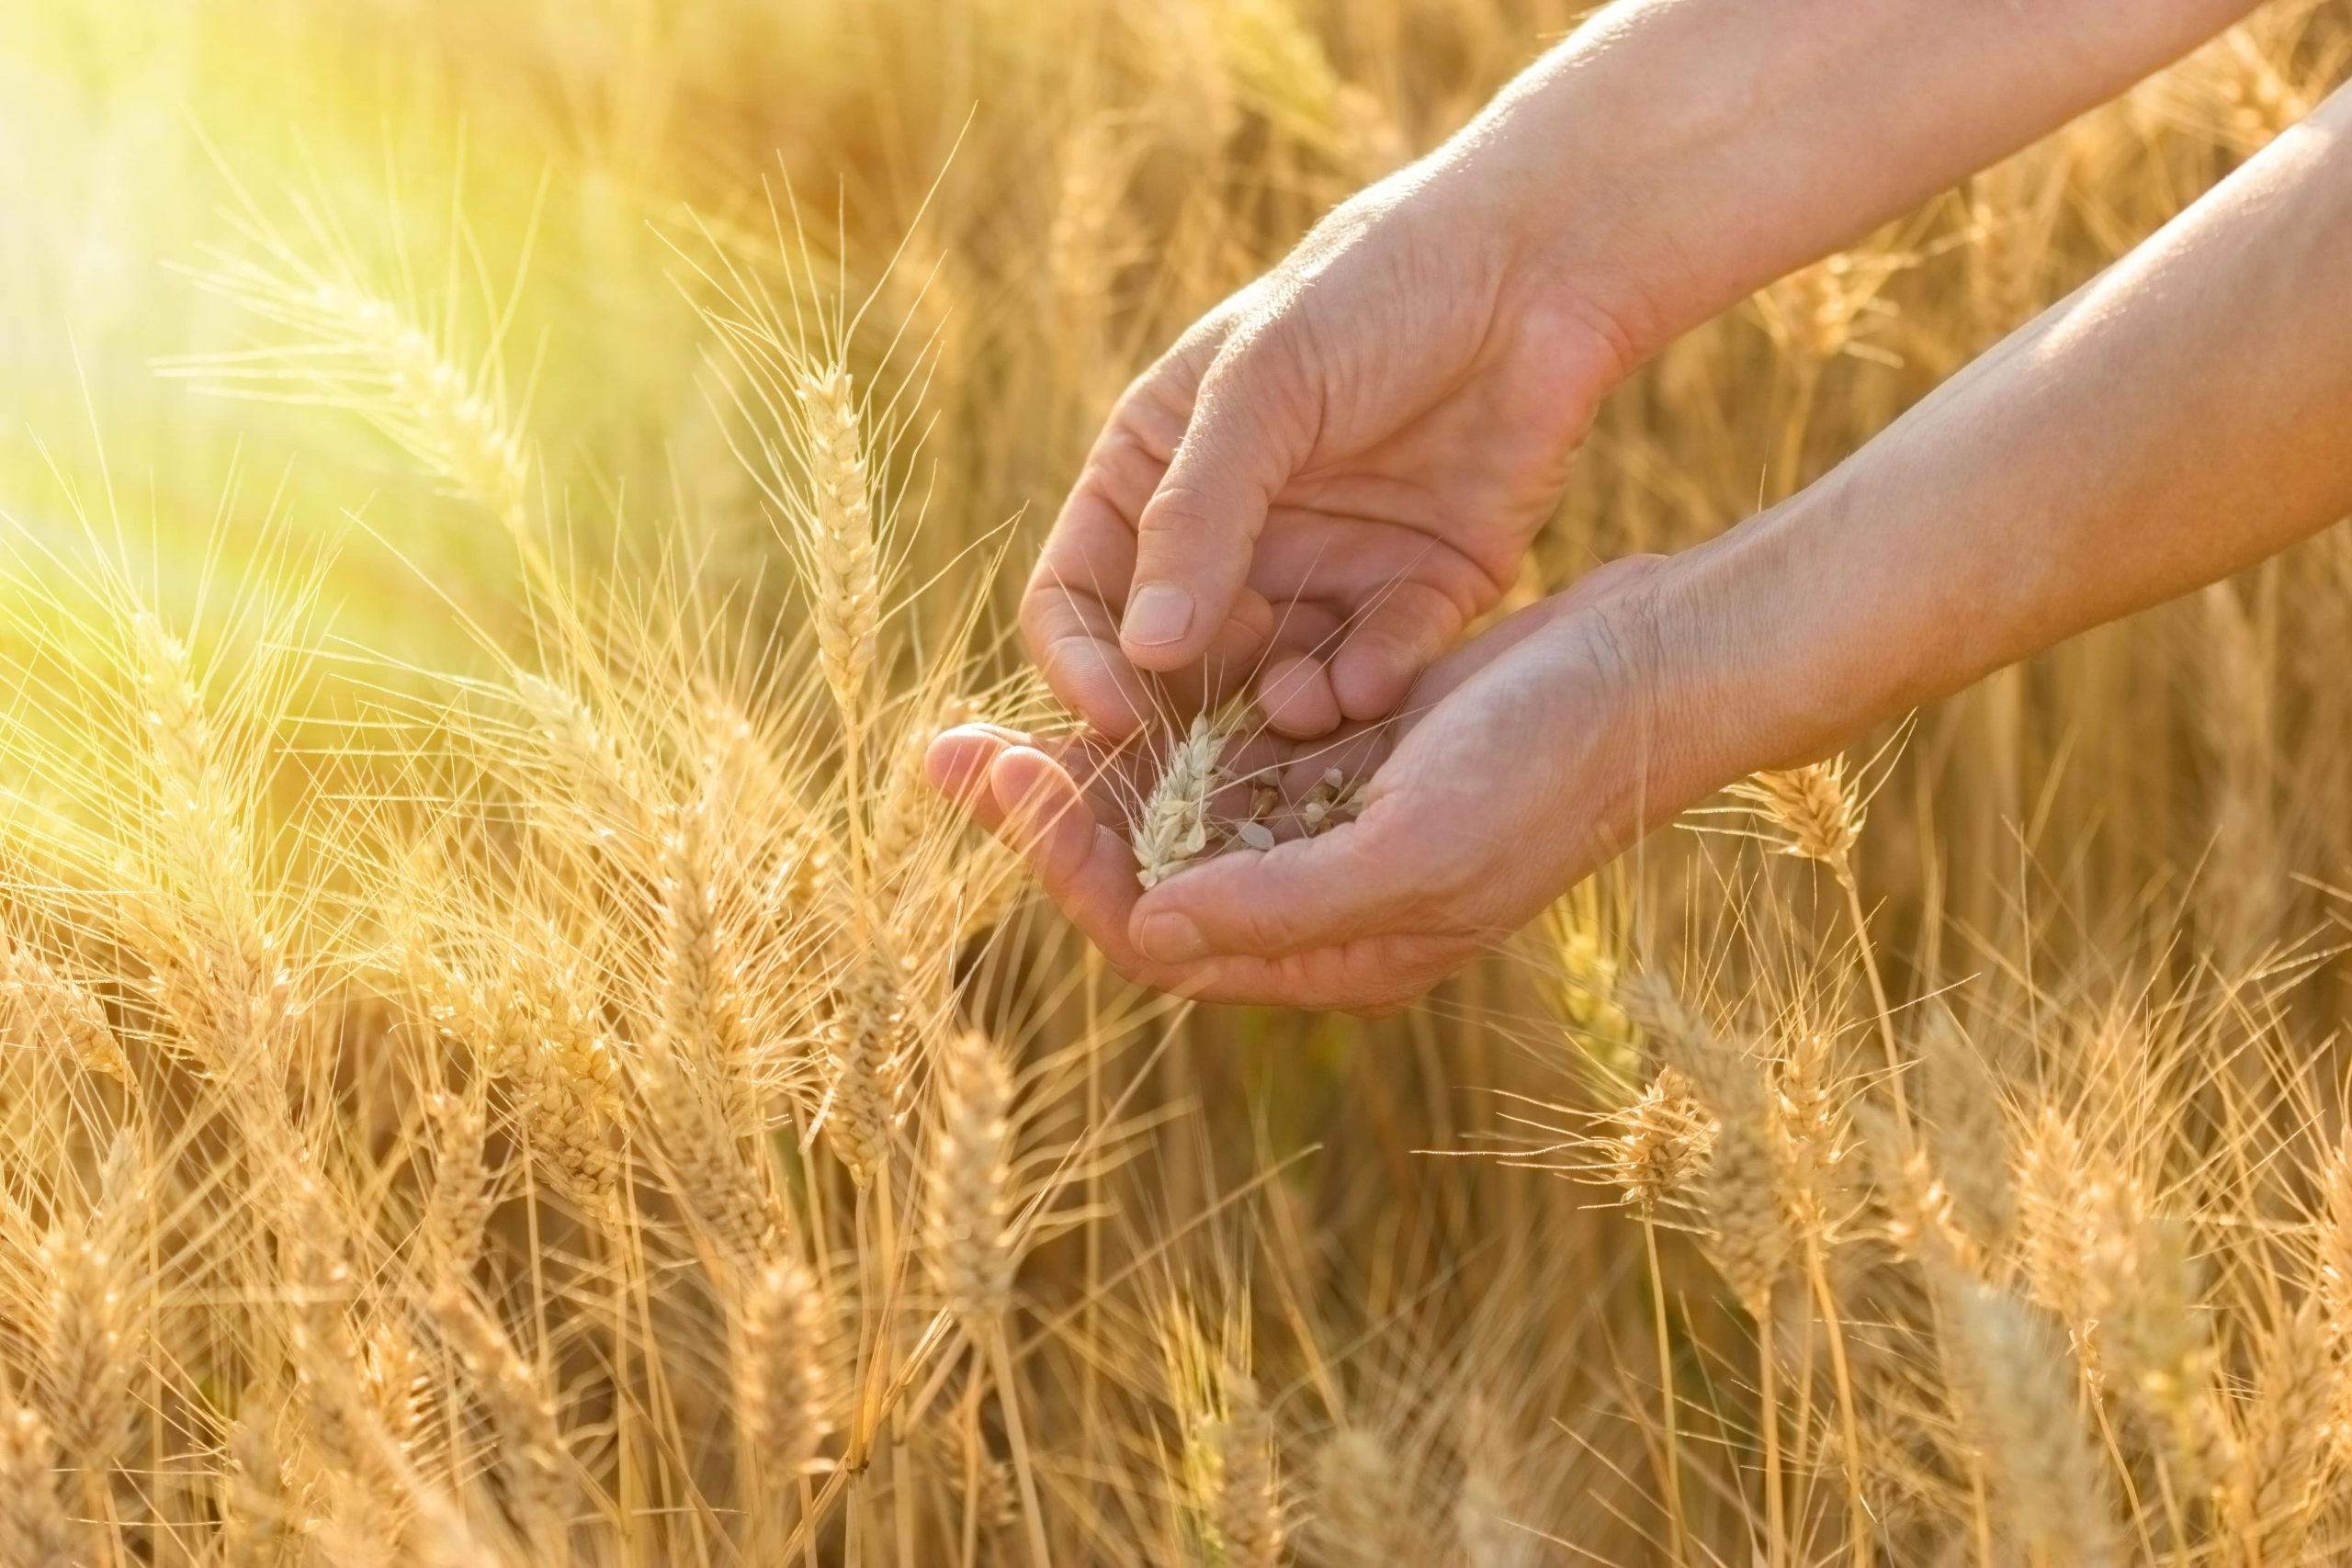 vecteezy_wheat-in-hands-at-the-end-of-the-day-a-farmer-checks-the-wheat_1336254-min